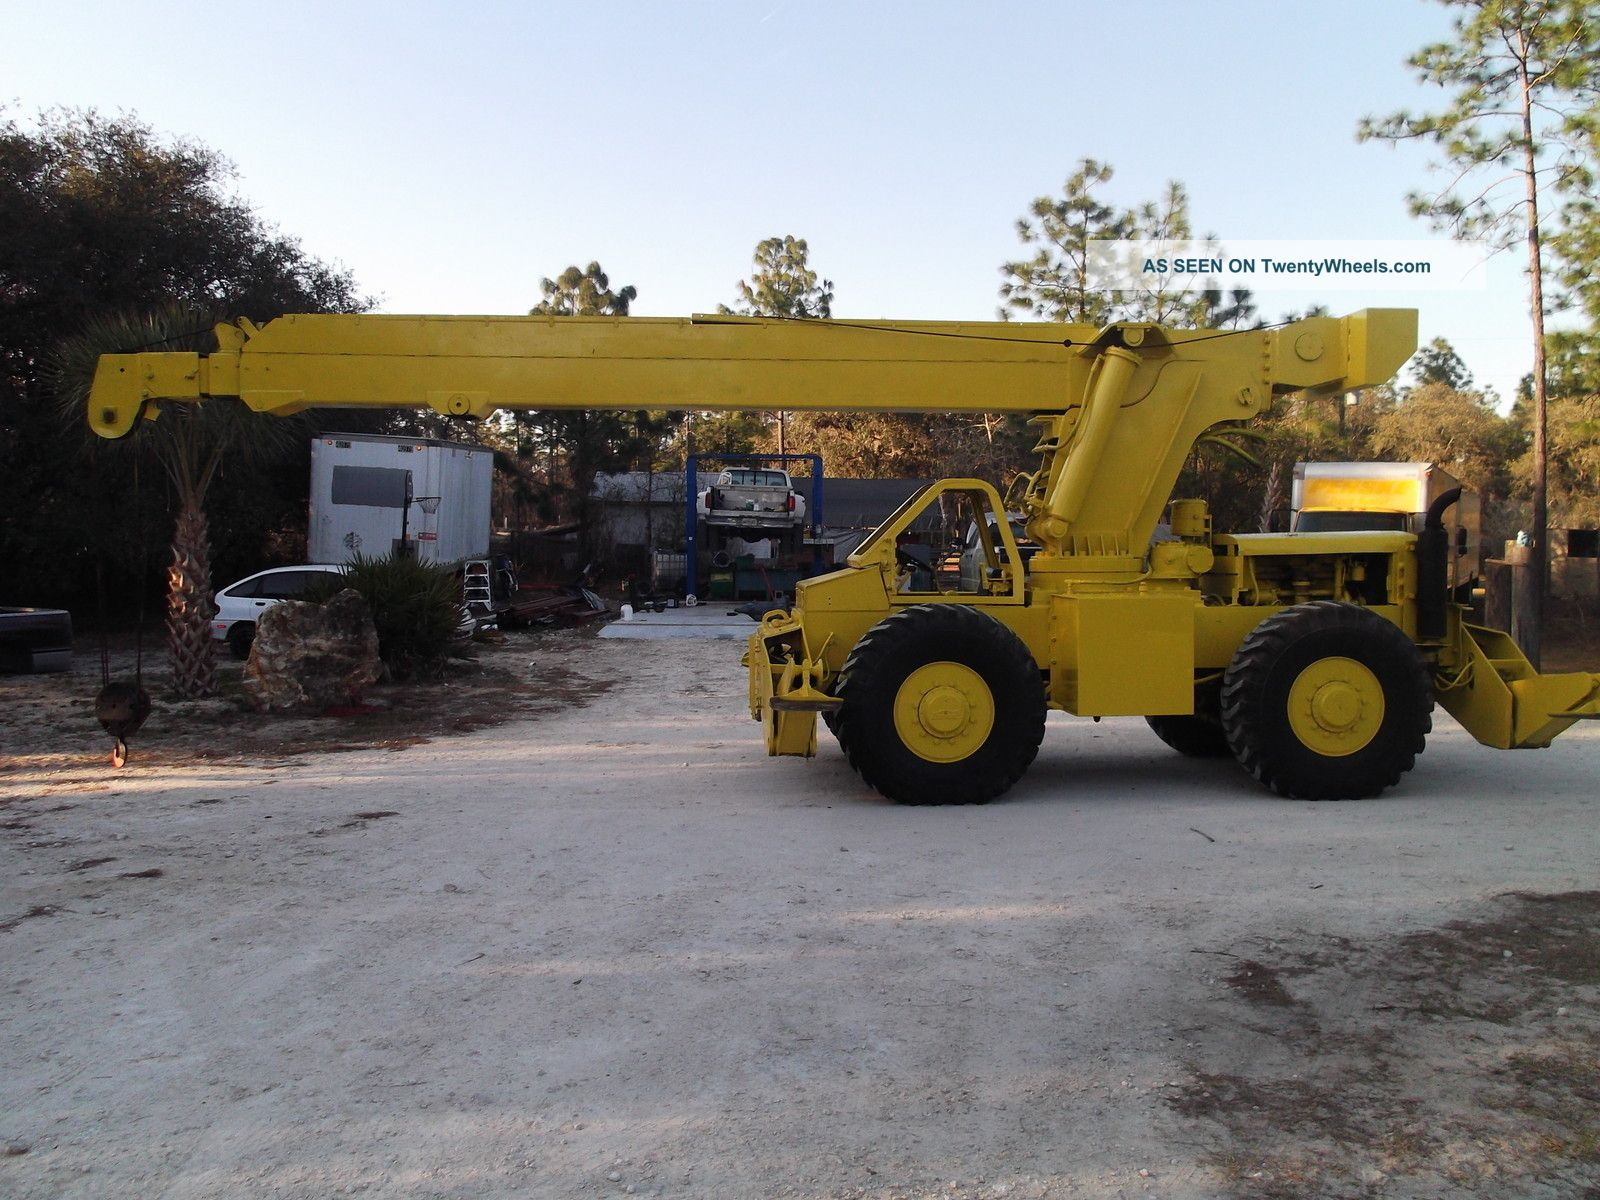 Pettibone 15 Ton Rough Terrain 4x4 Crane Located In Dunnellon Florida Cranes photo